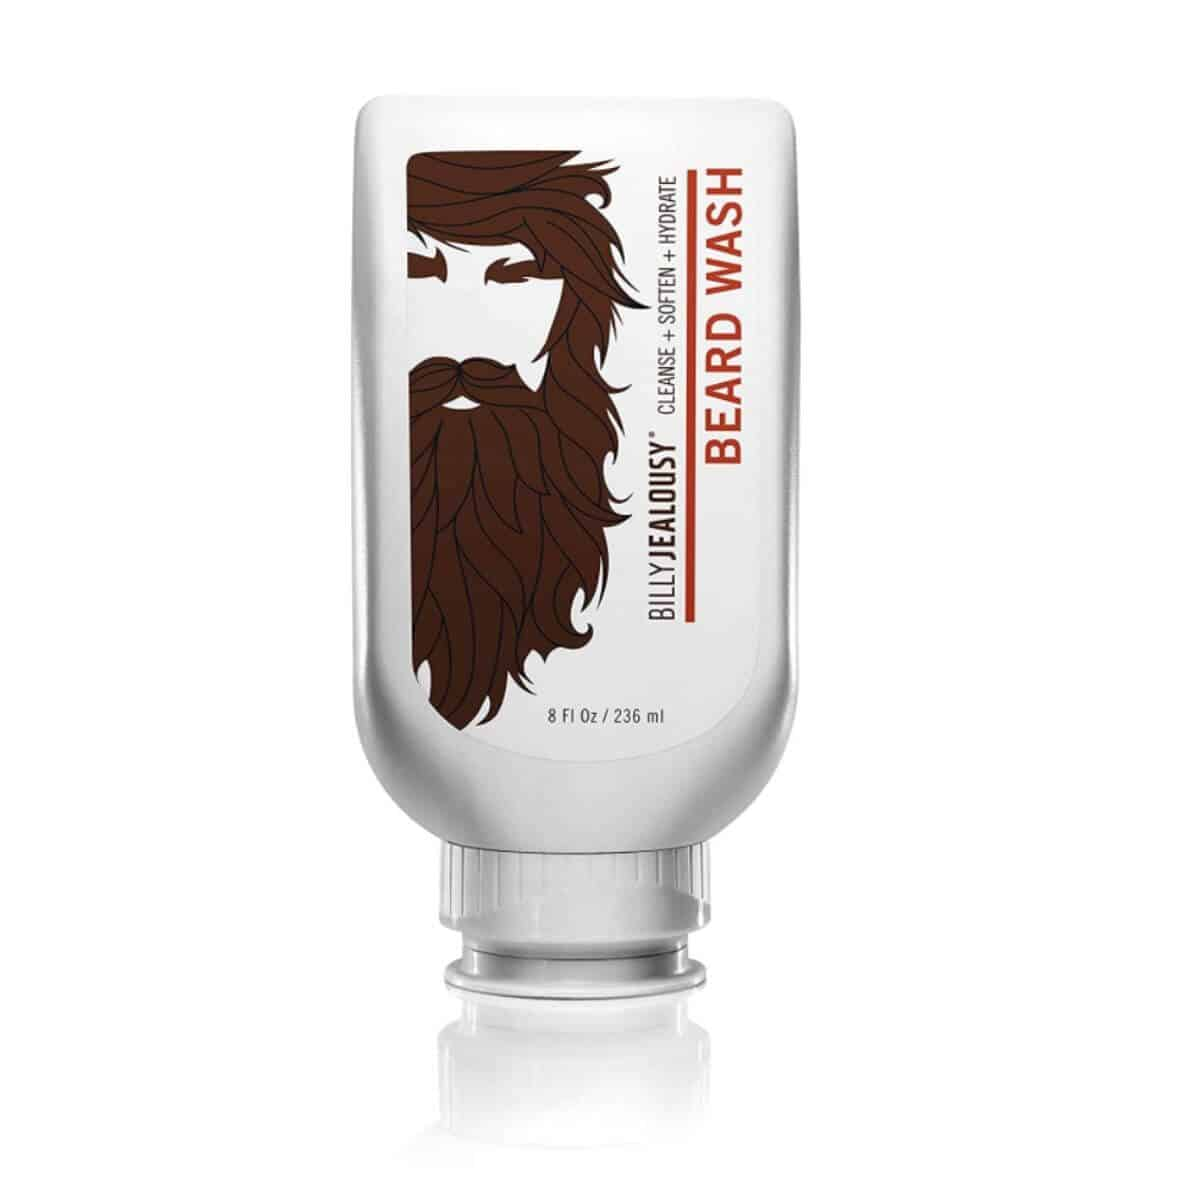 White bottle of beard wash.